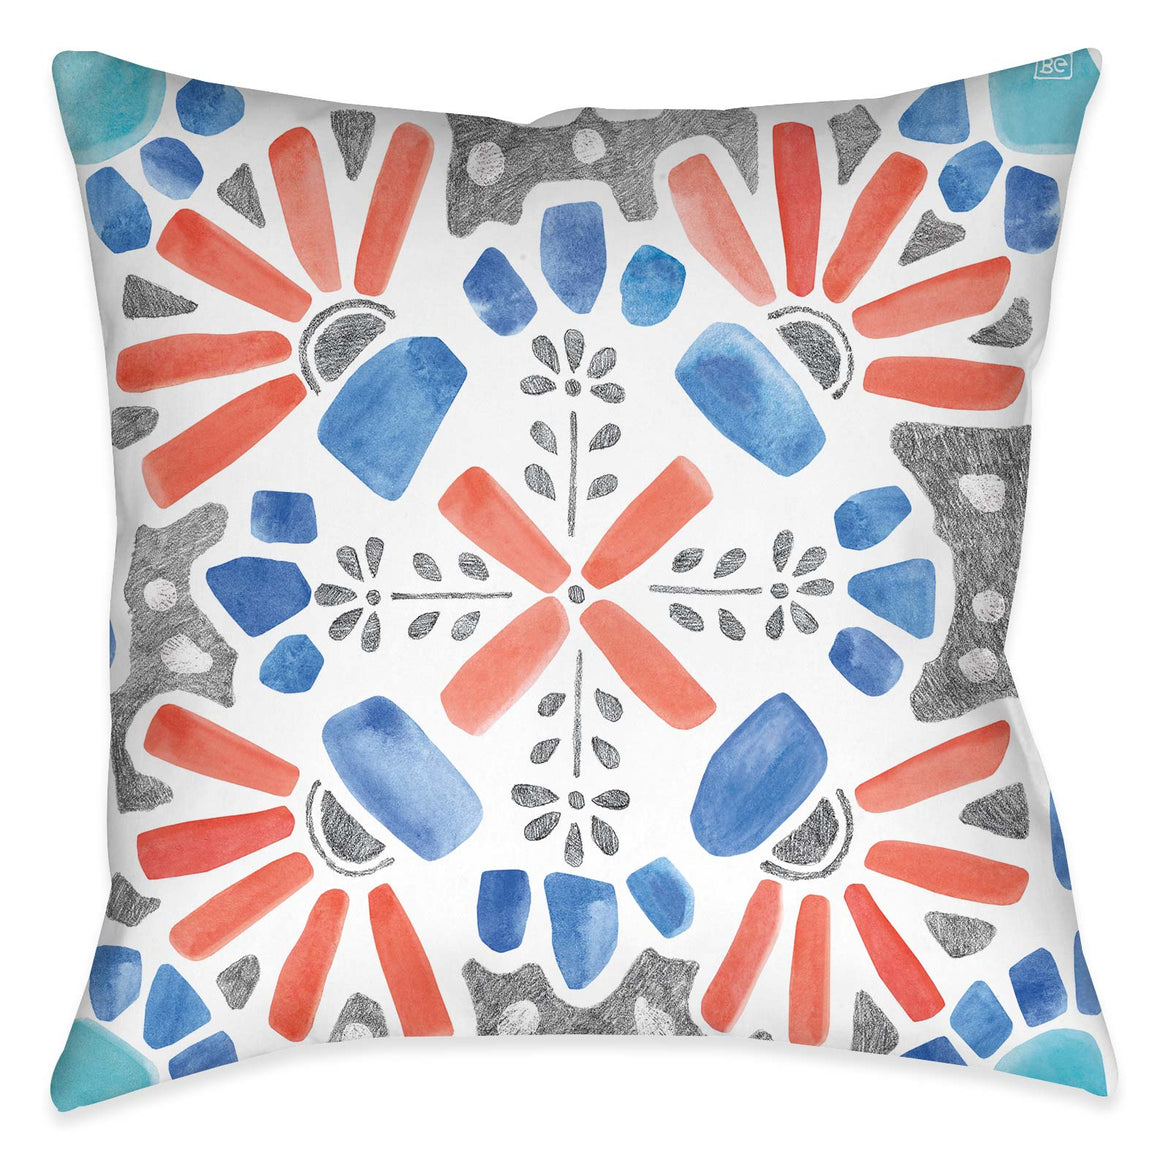 "The ""Coastal Mosaic I Outdoor Decorative Pillow"" features a modern must-have mosaic design. The eclectic balance of coral, aqua and grey colors exposes its artistic rendering giving it a unique flare inspired by traditional mosaic tile designs."